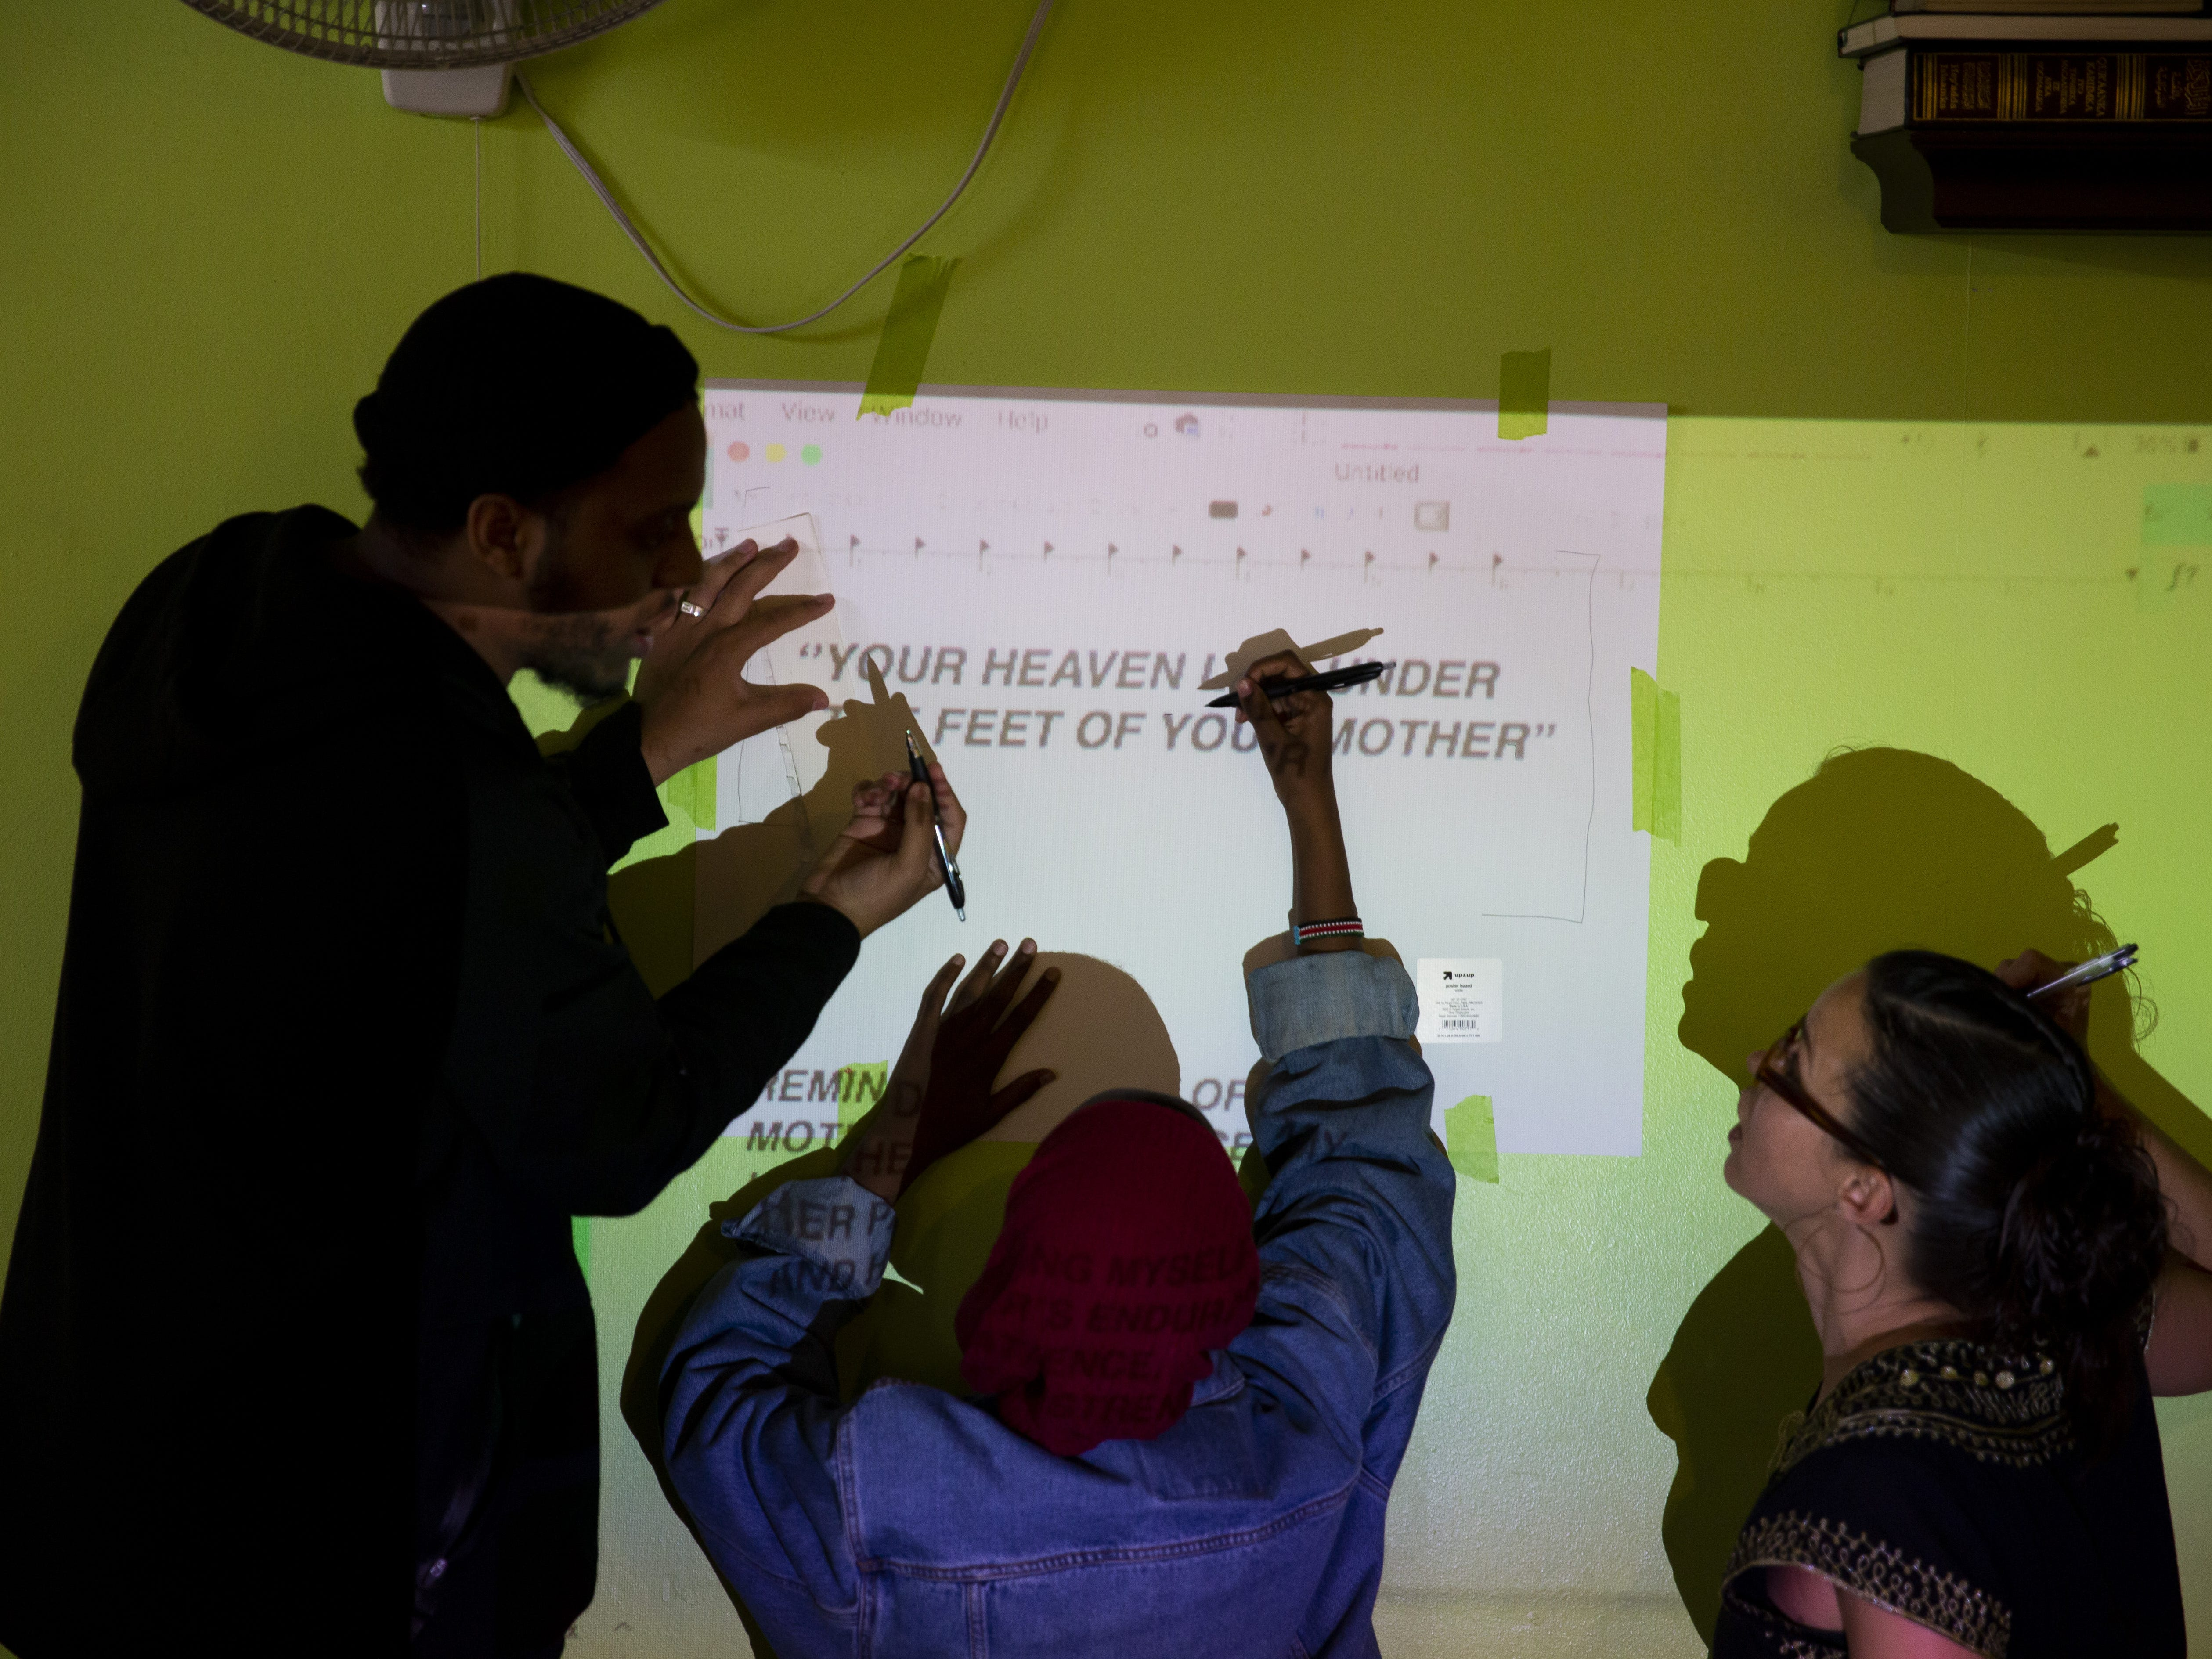 From left, Haadi Mohamed, Faisa Ahmed and Barni Qaasim trace letters of a quote that will be included on the mural in Phoenix, Ariz. on March 31, 2019. Mohamed is an artist from San Diego, Ahmed is an Arizona State University student studying criminology and Qaasim is a member of the Somali Association of Arizona.